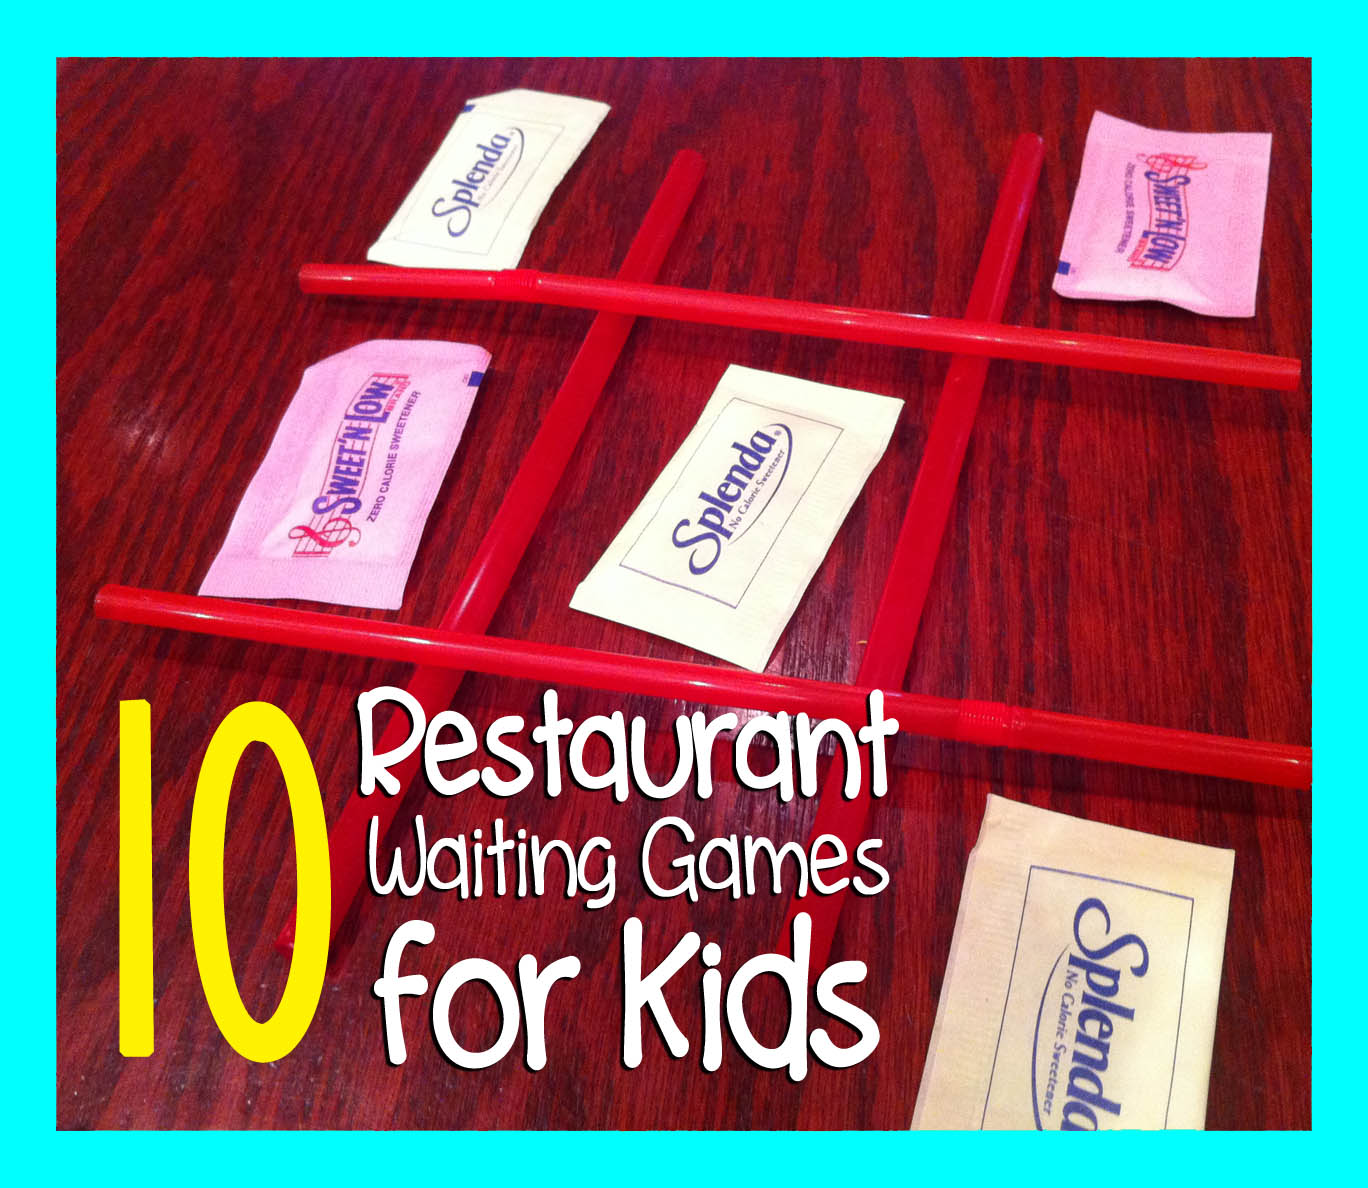 10 Restaurant Waiting Games to Play with Kids «